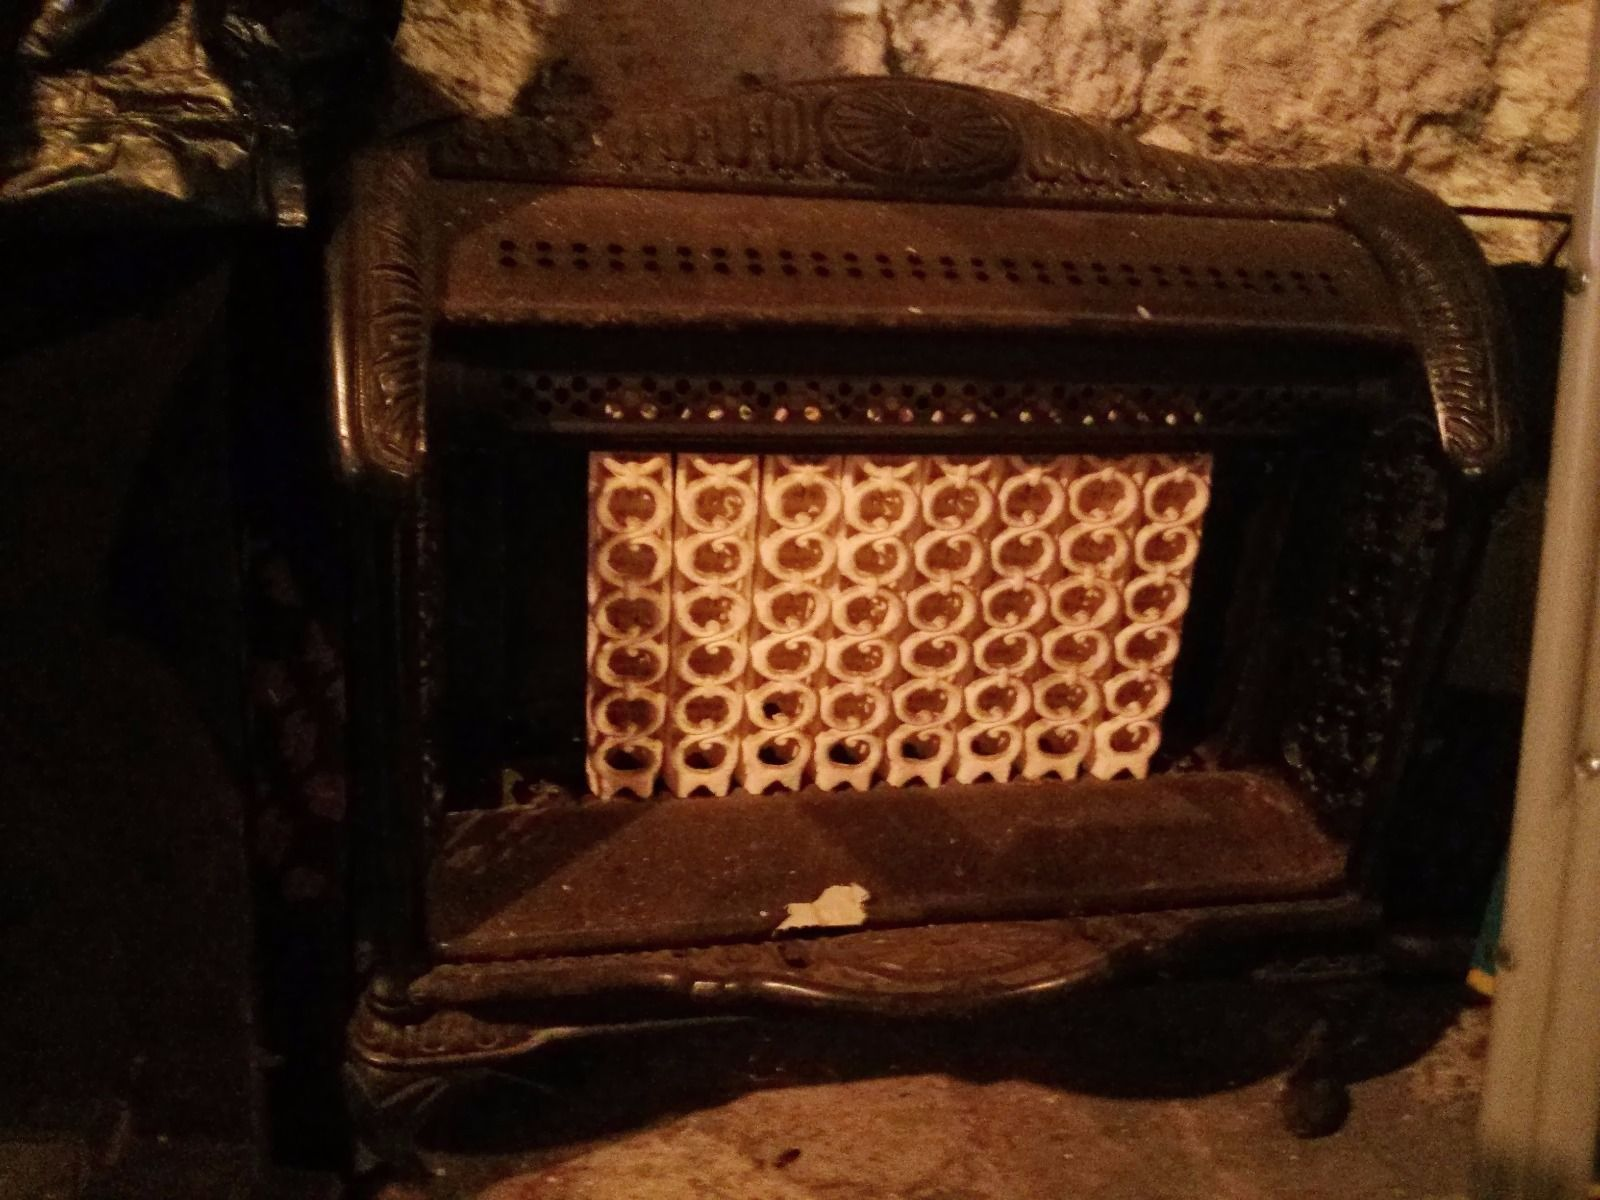 ray-glo fireplace inserts Vintage